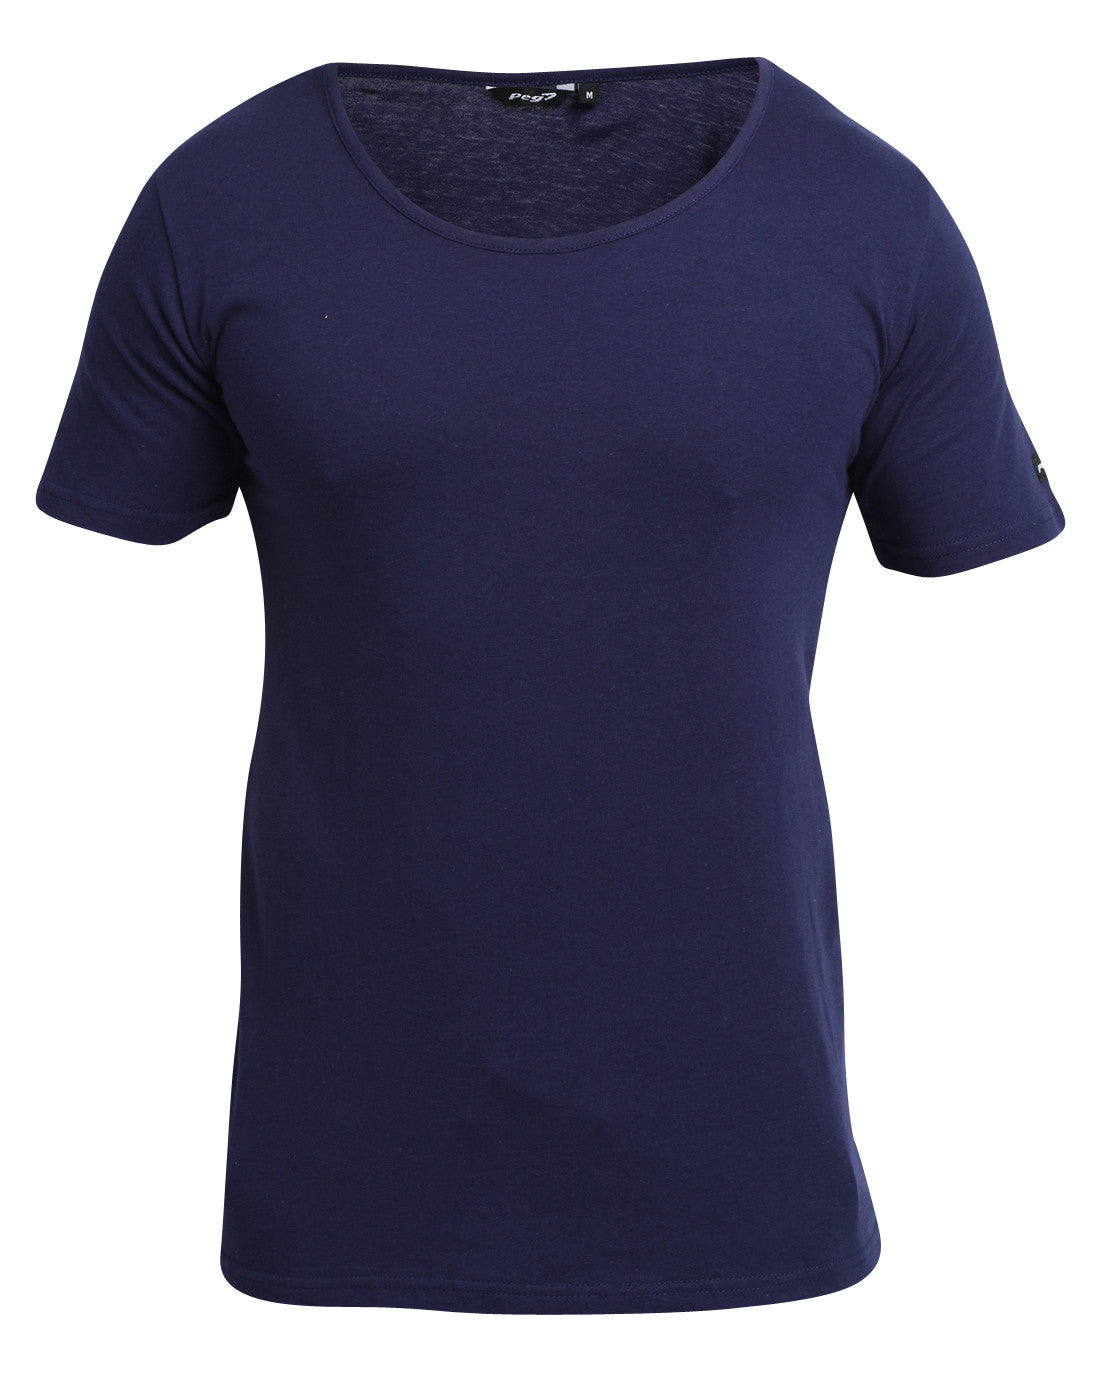 T Shirts Tops Men 39 S Boat Neck Navy M Was Listed